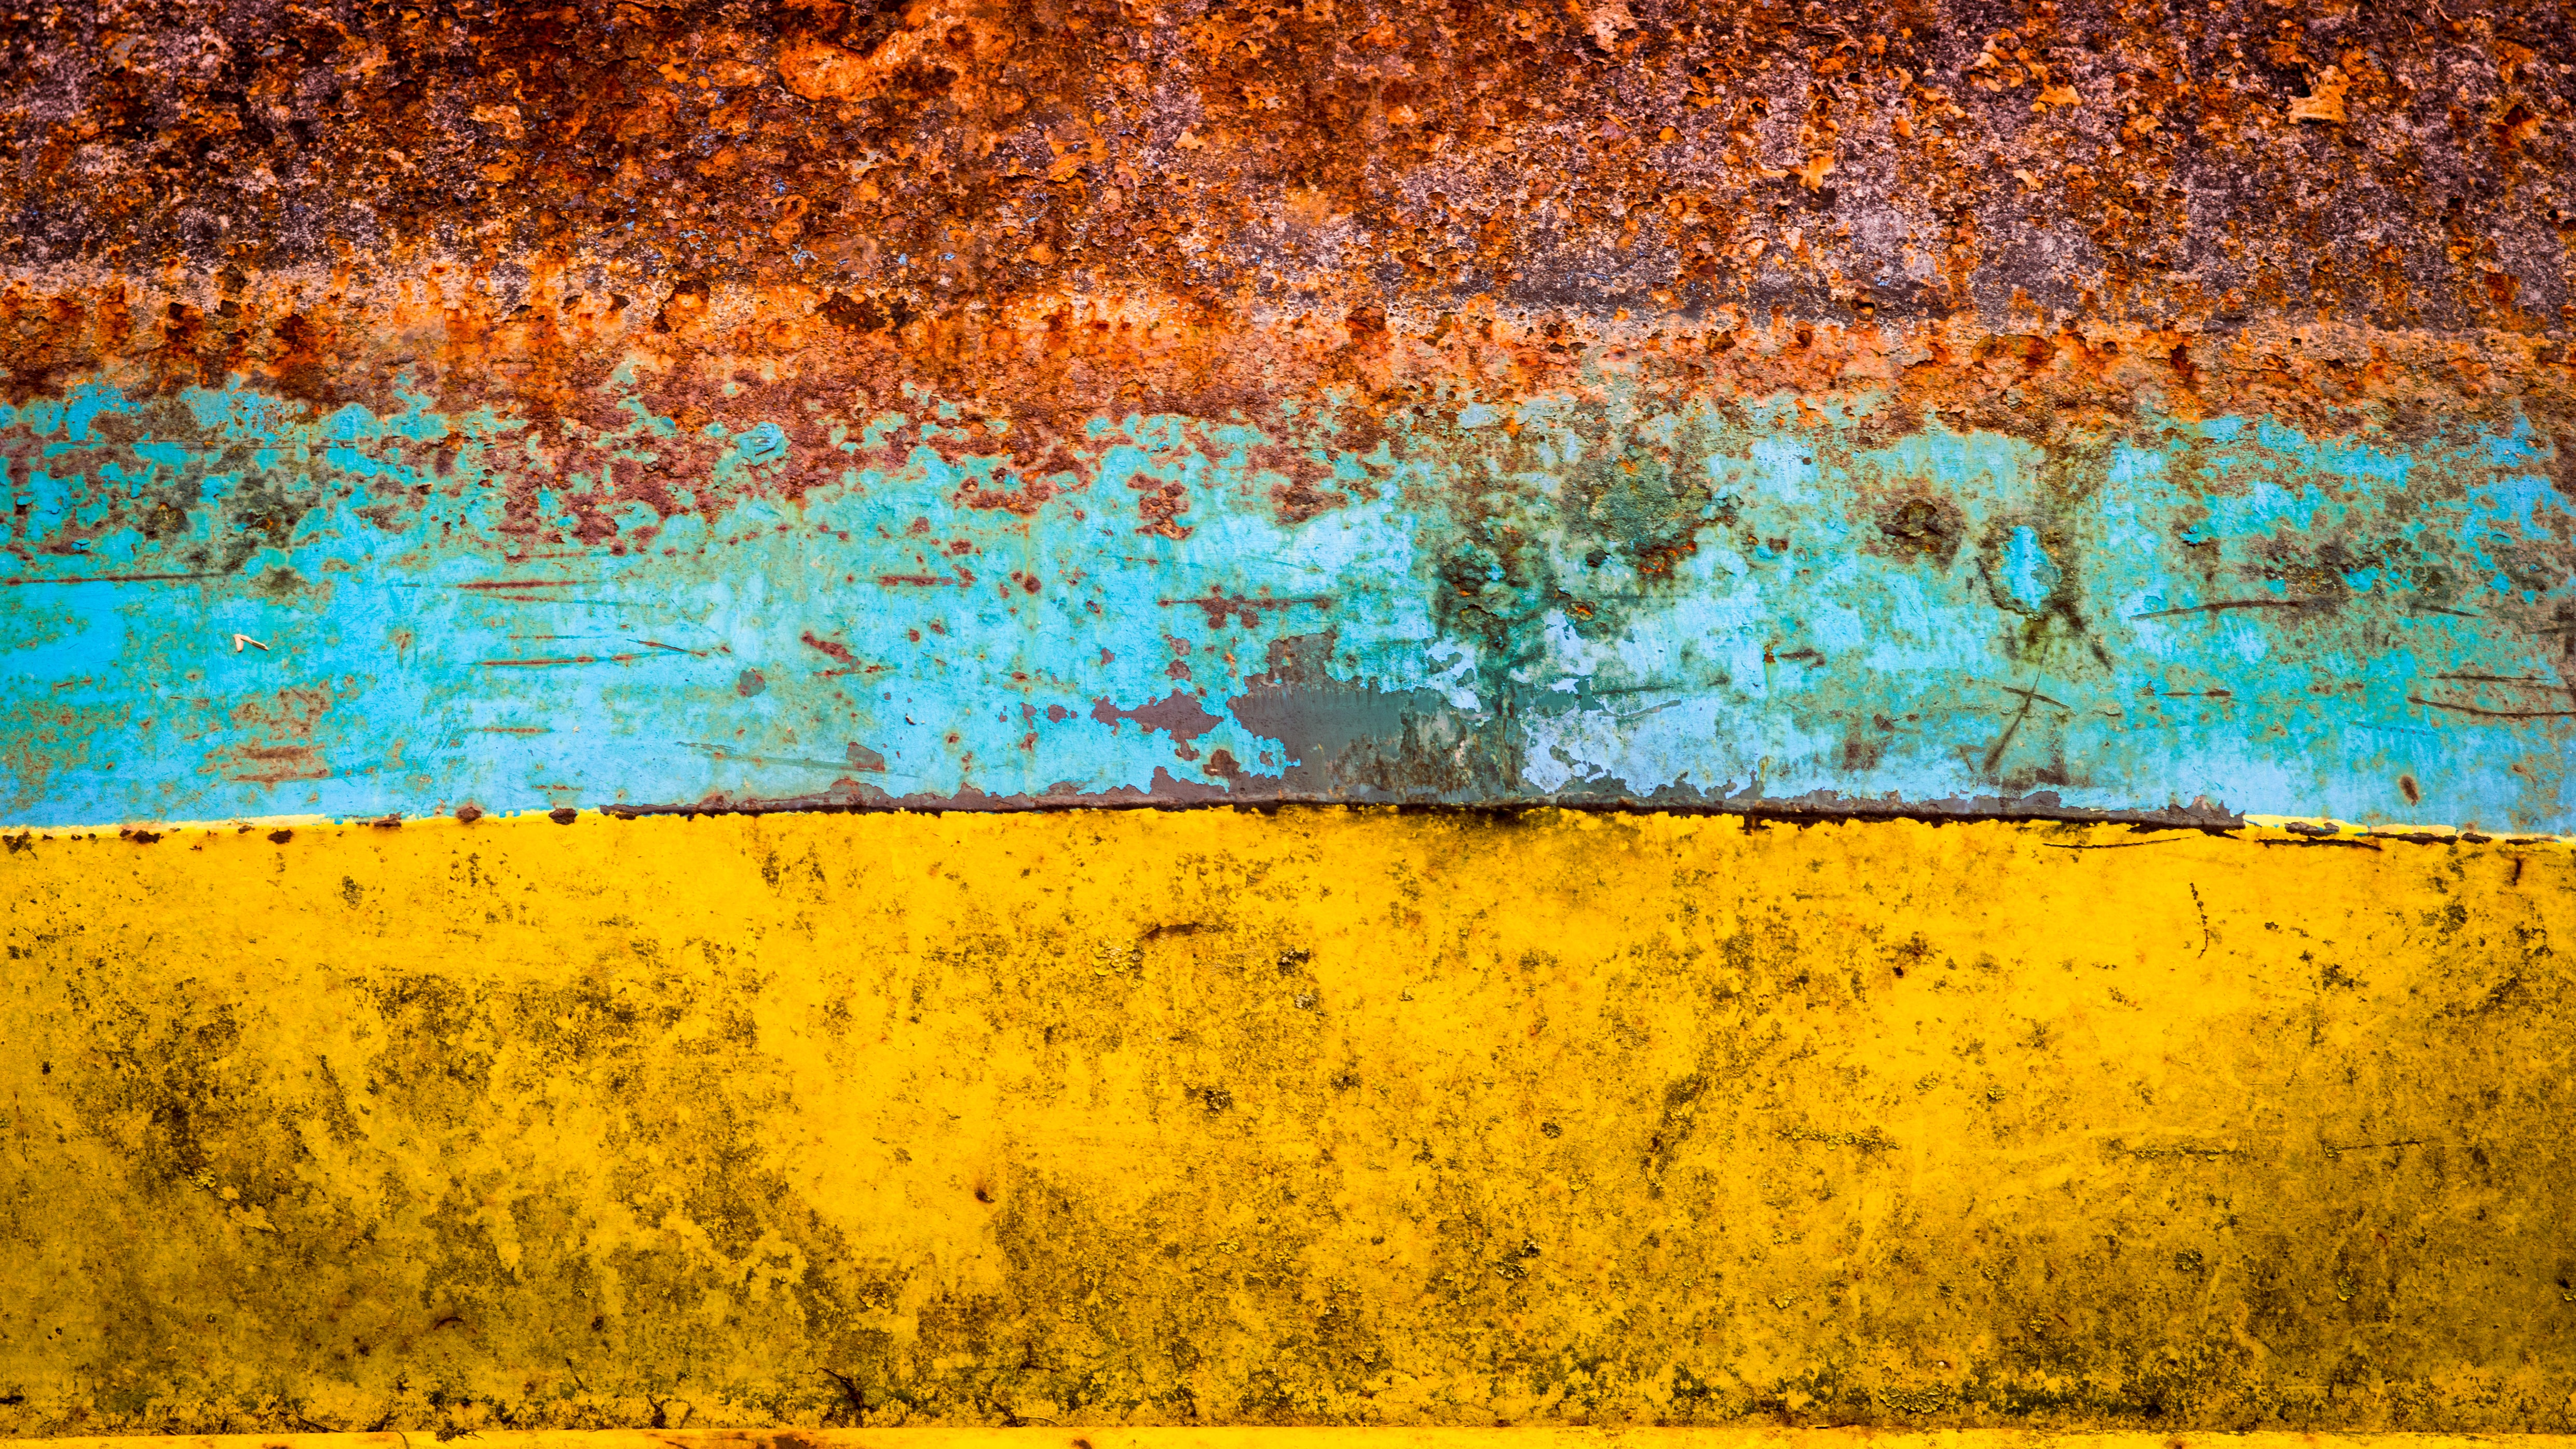 brown, blue, and yellow abstract painting